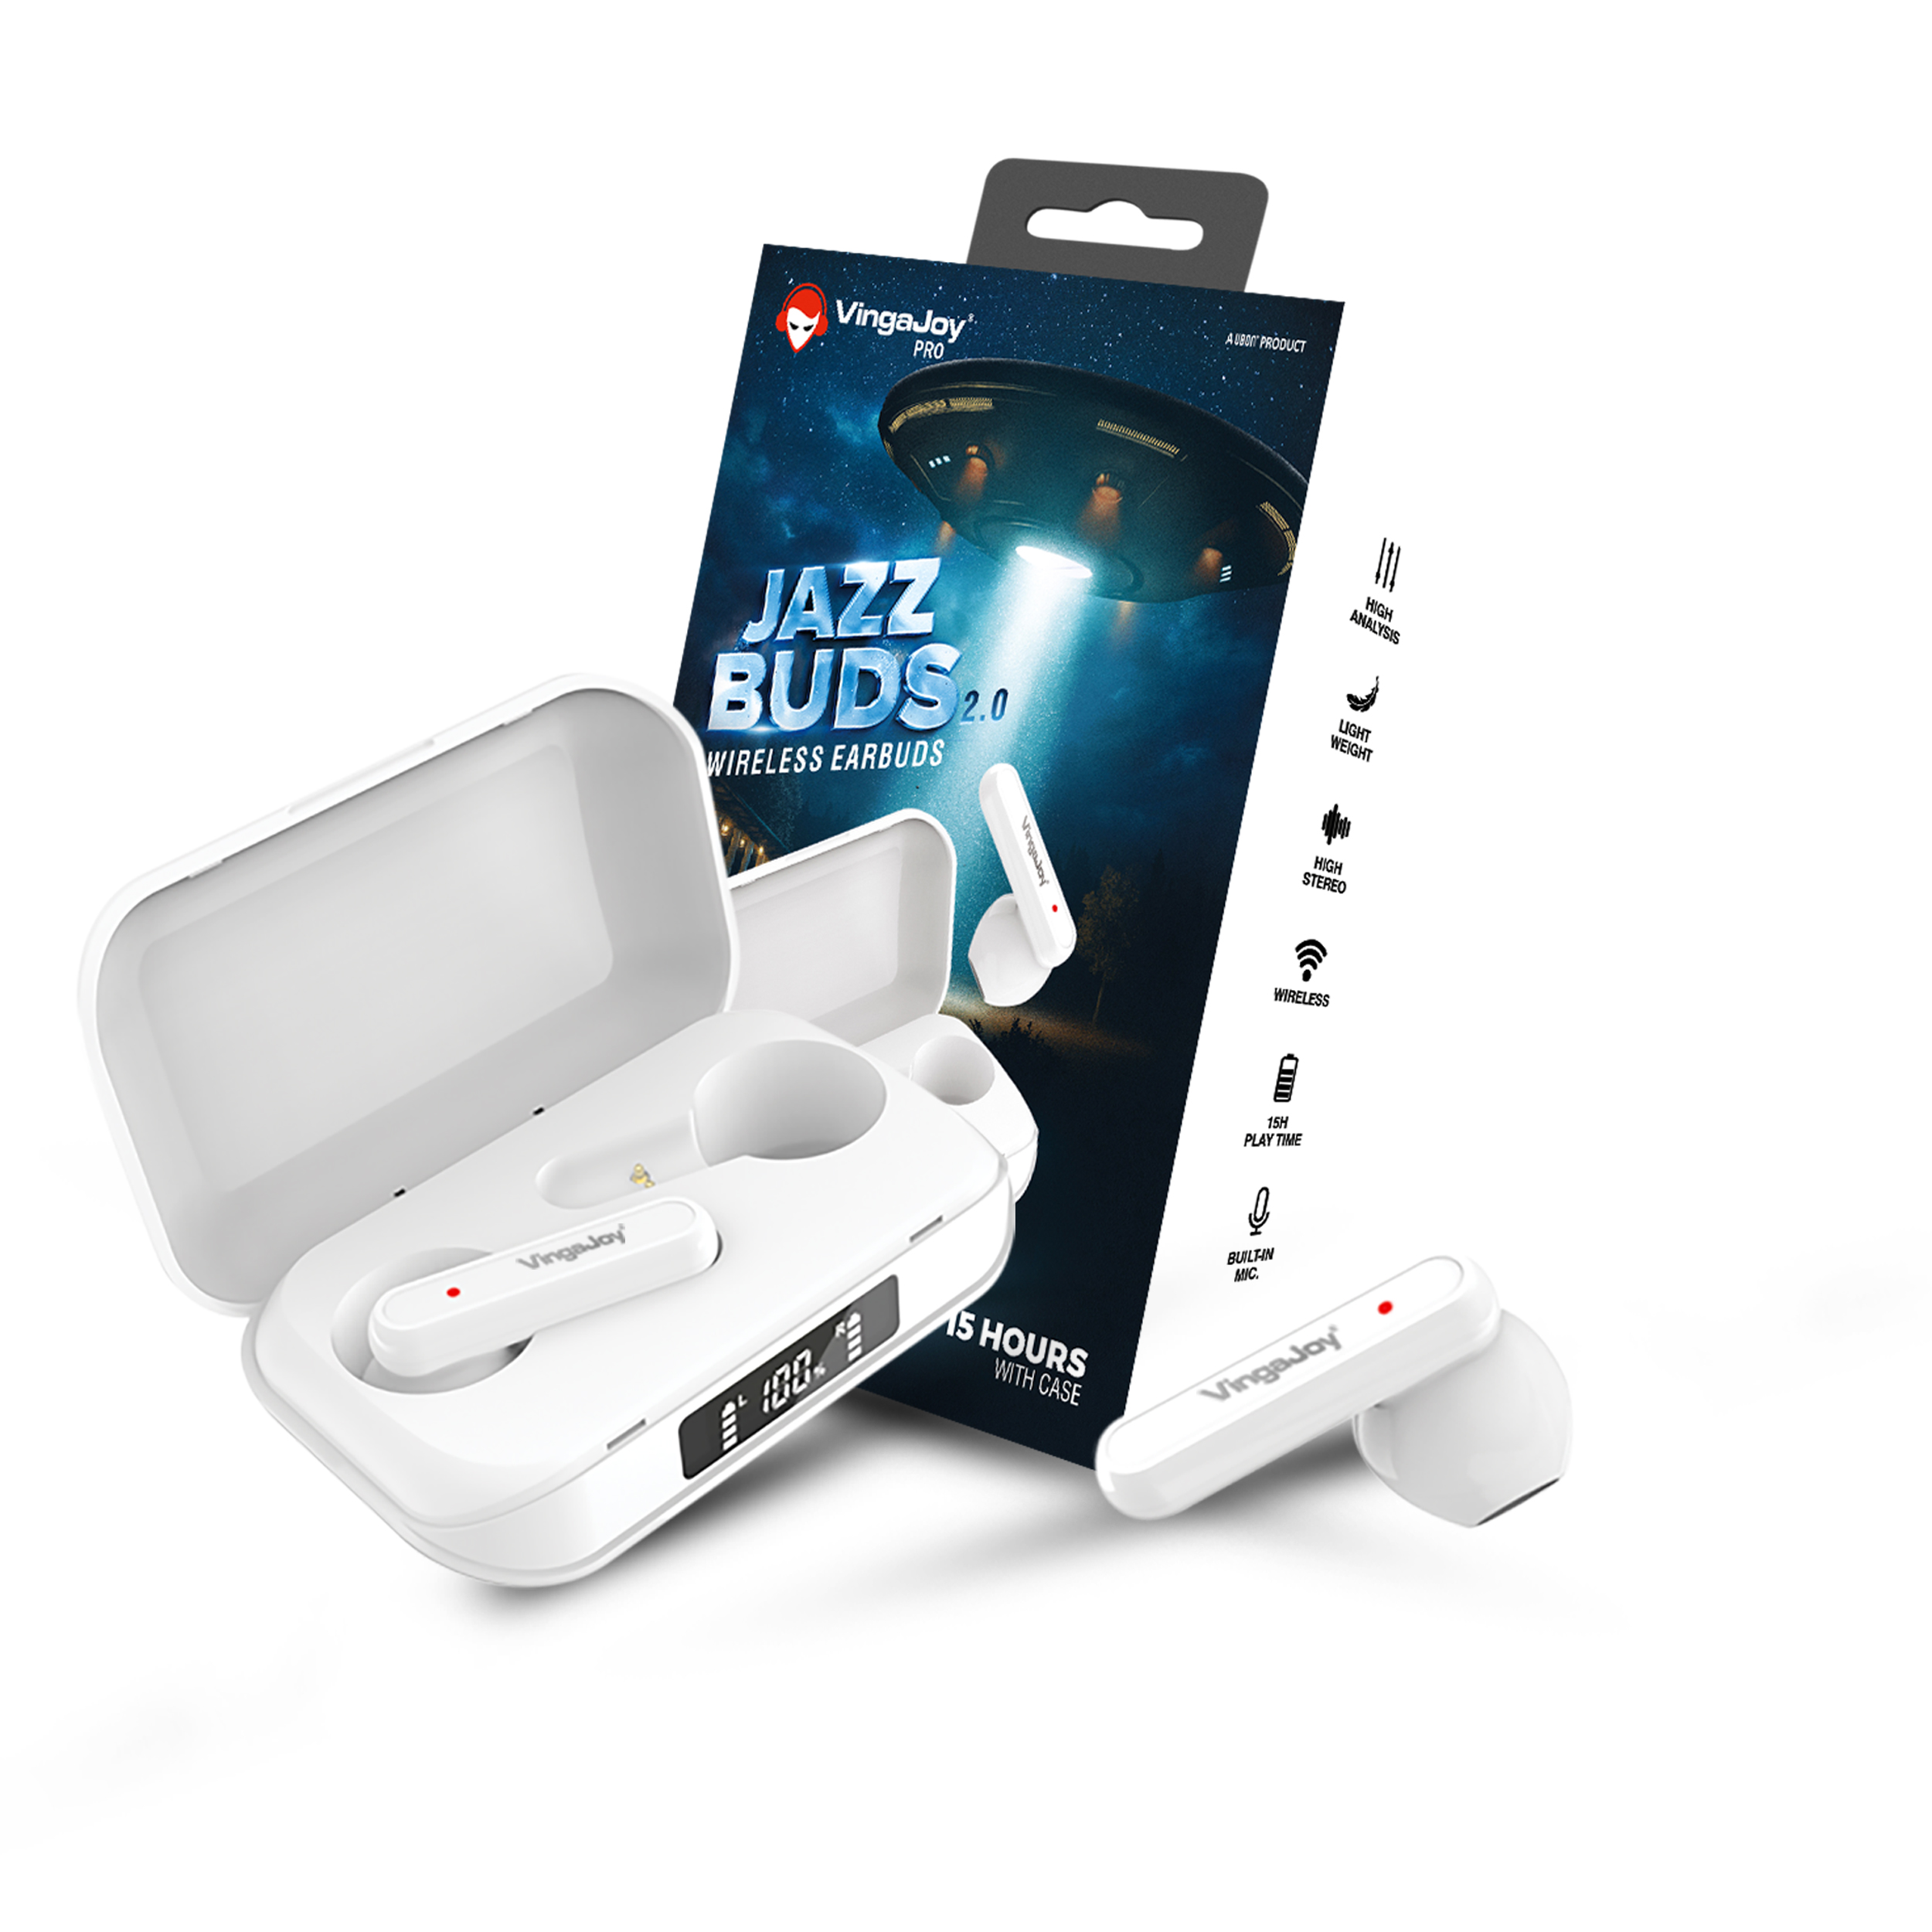 VingaJoy true wireless Jazz Buds 2.0 launched in India at Rs 1,999